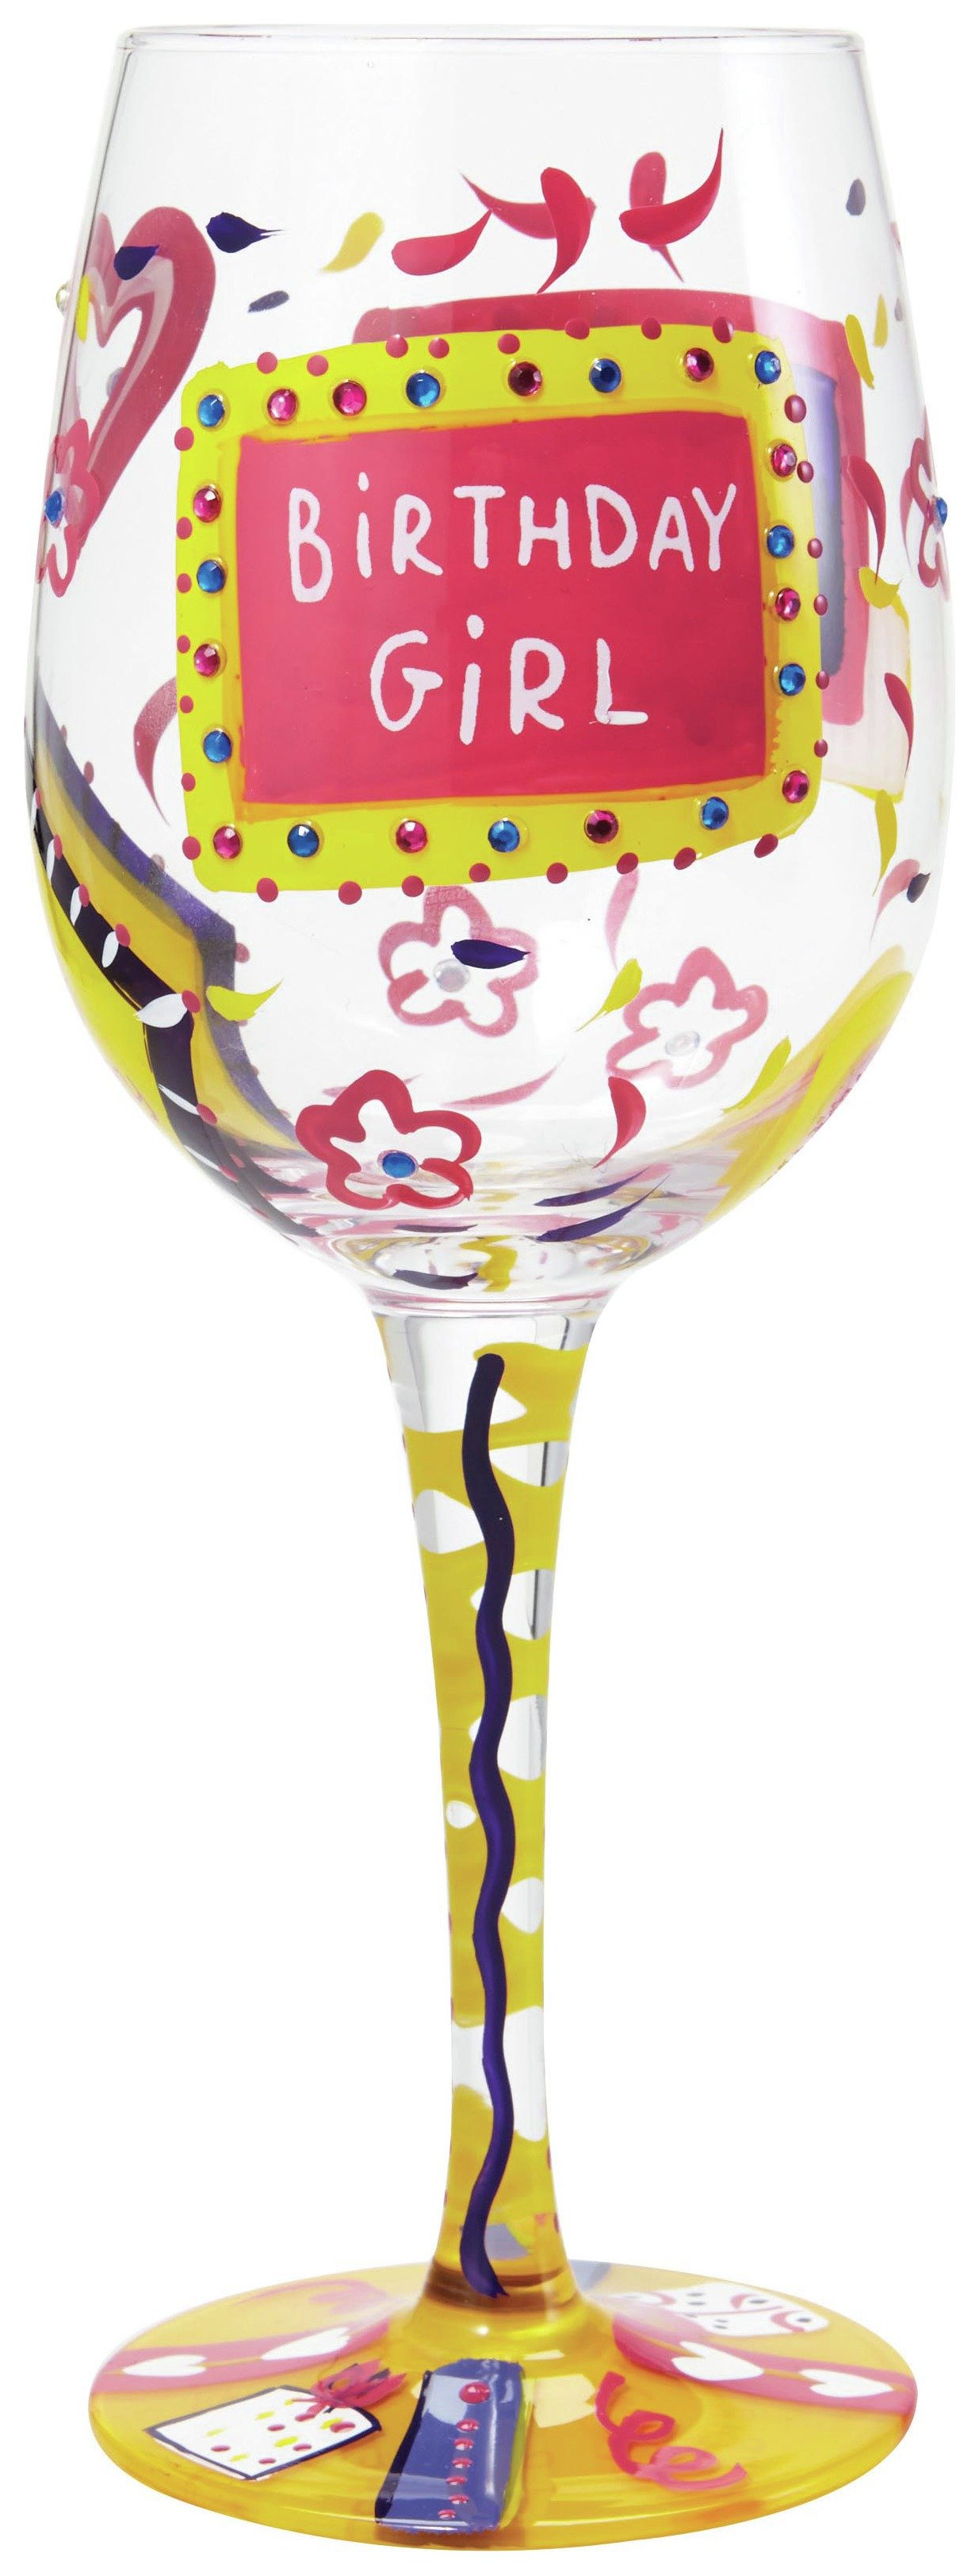 lolita-birthday-girl-wine-glass